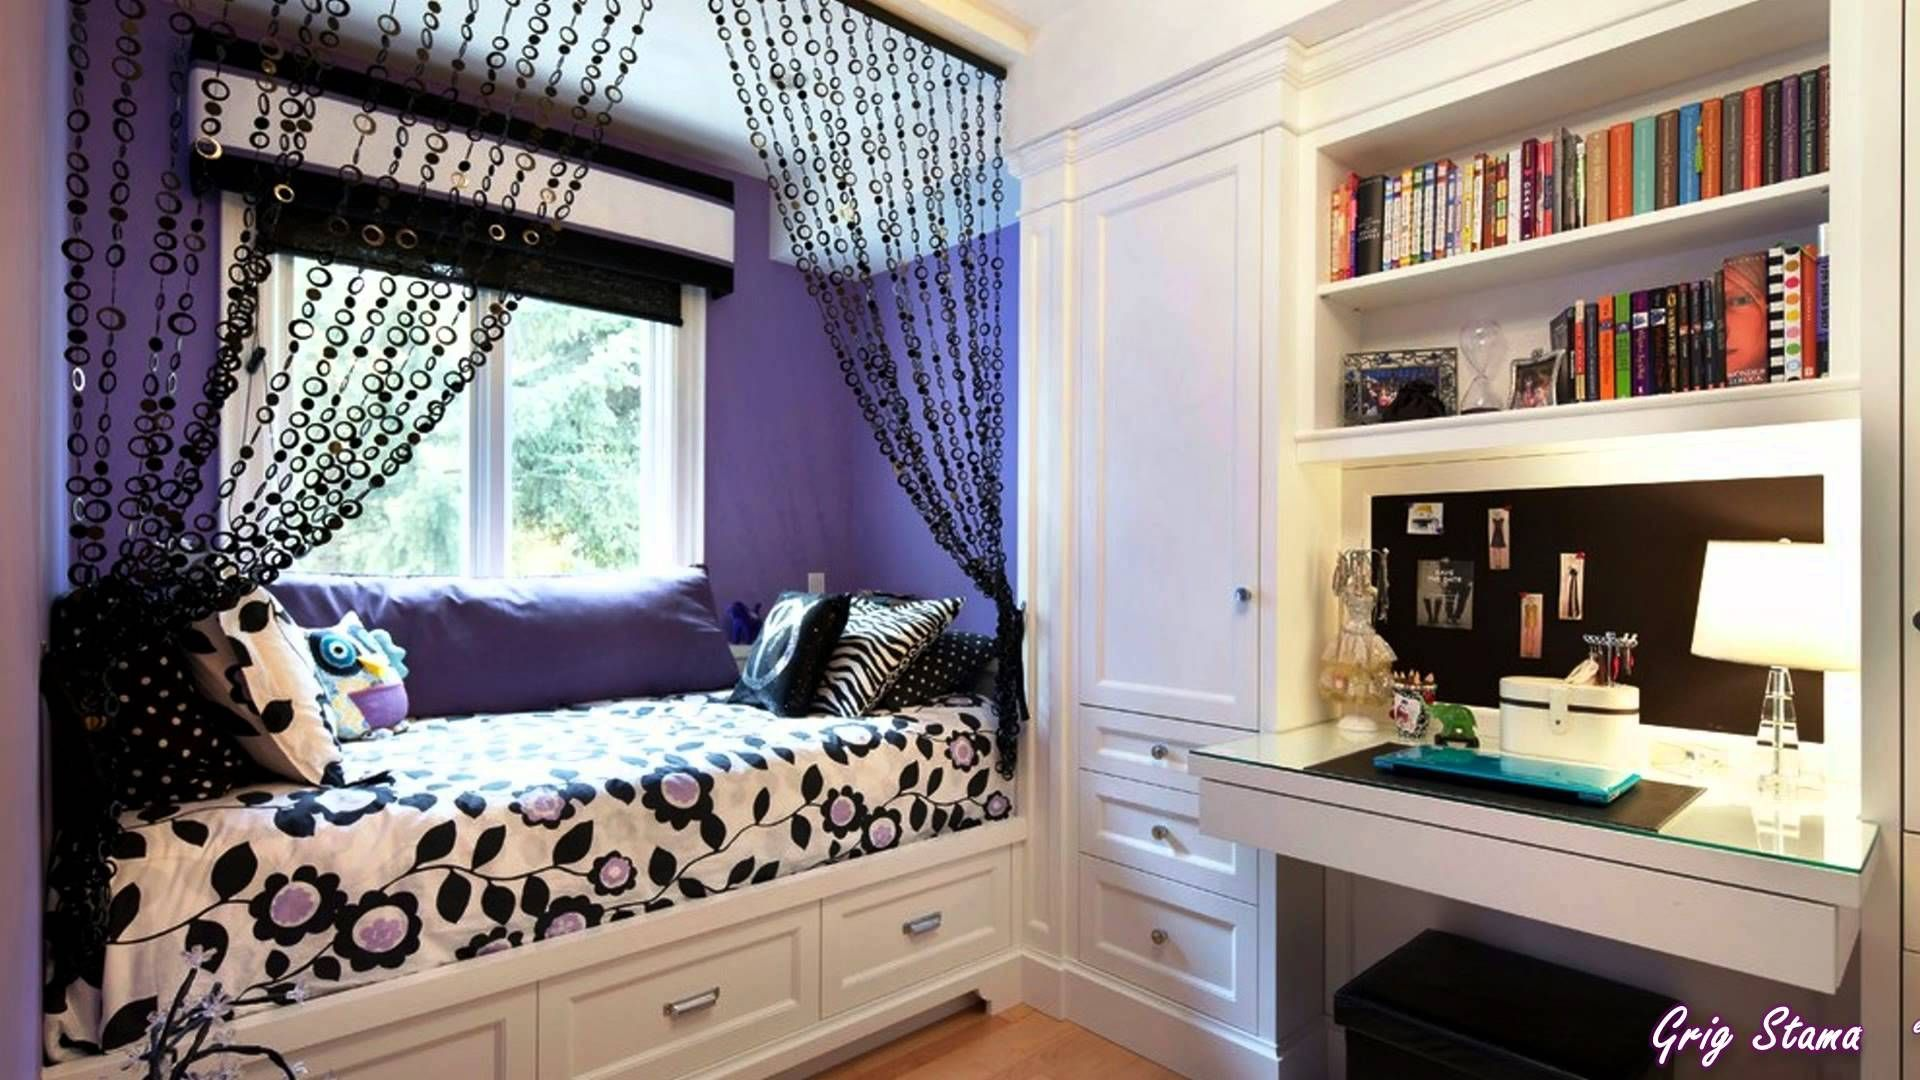 Bedroom designs teenage girls tumblr - Bedroom Ideas For Teenage Girls Tumblr Simple Cosmoplast Biz